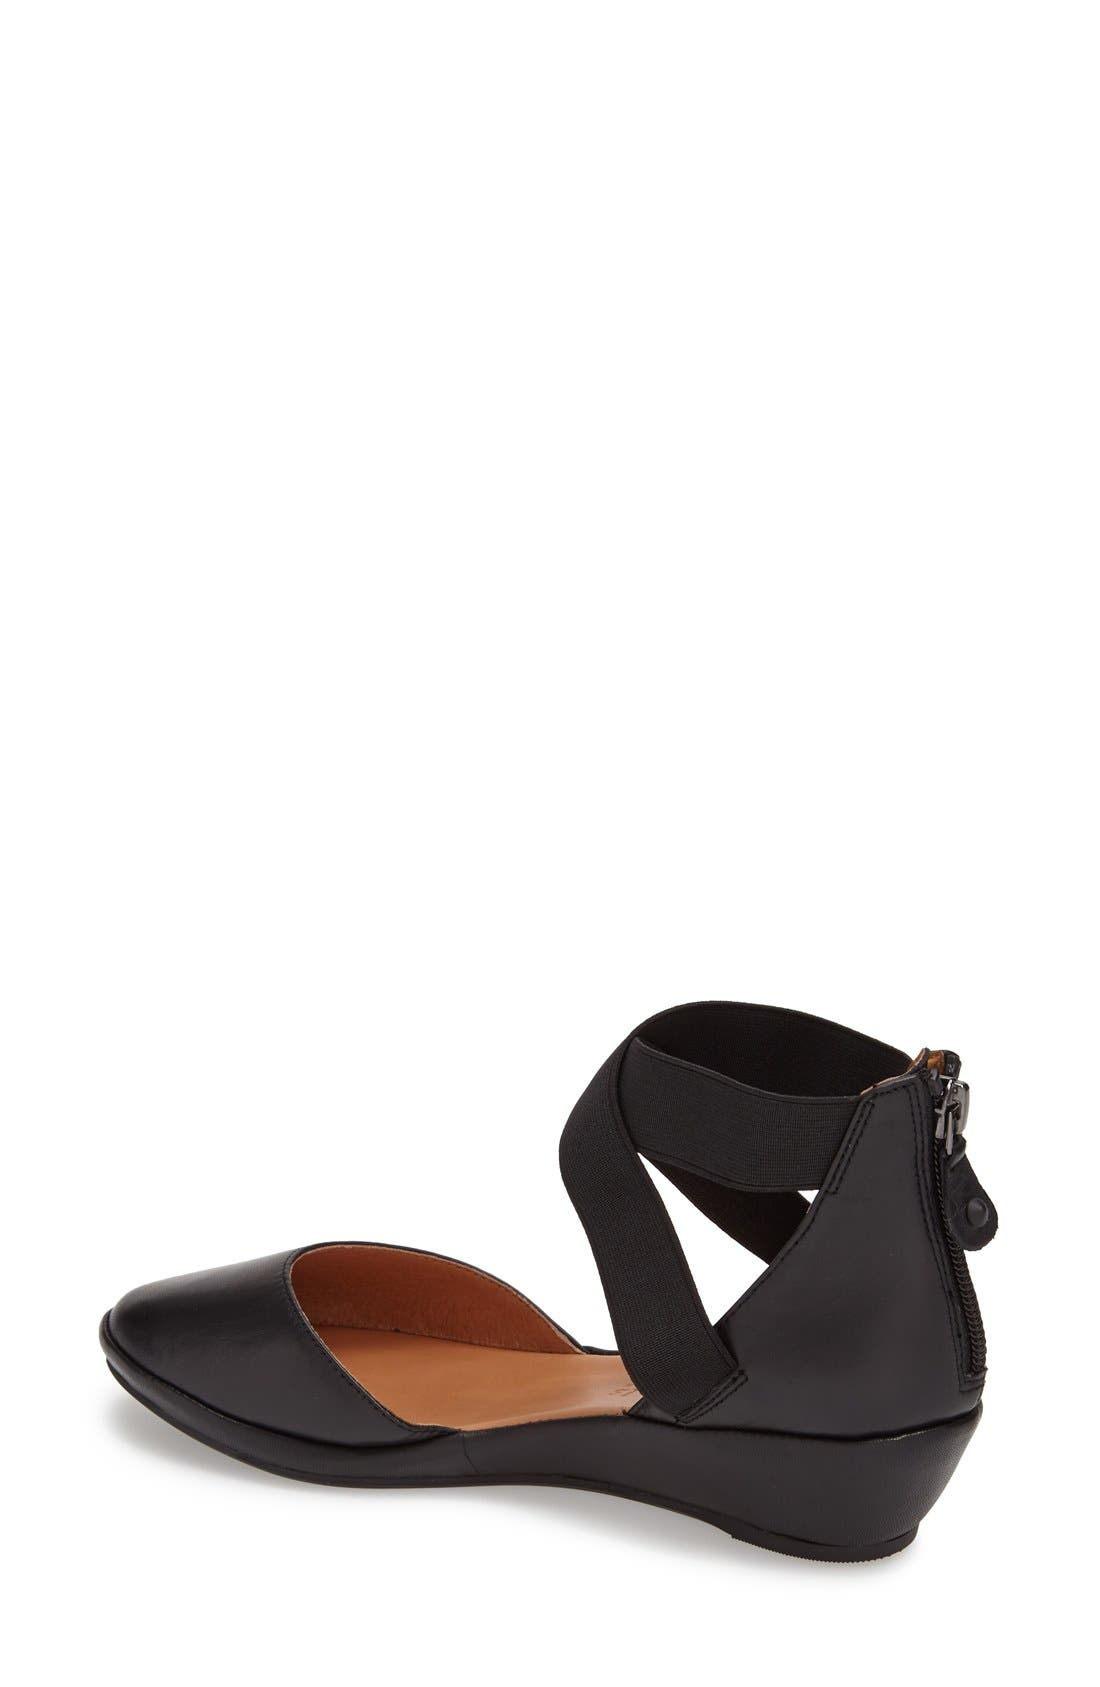 by Kenneth Cole 'Noa' Elastic Strap d'Orsay Sandal,                             Alternate thumbnail 2, color,                             BLACK